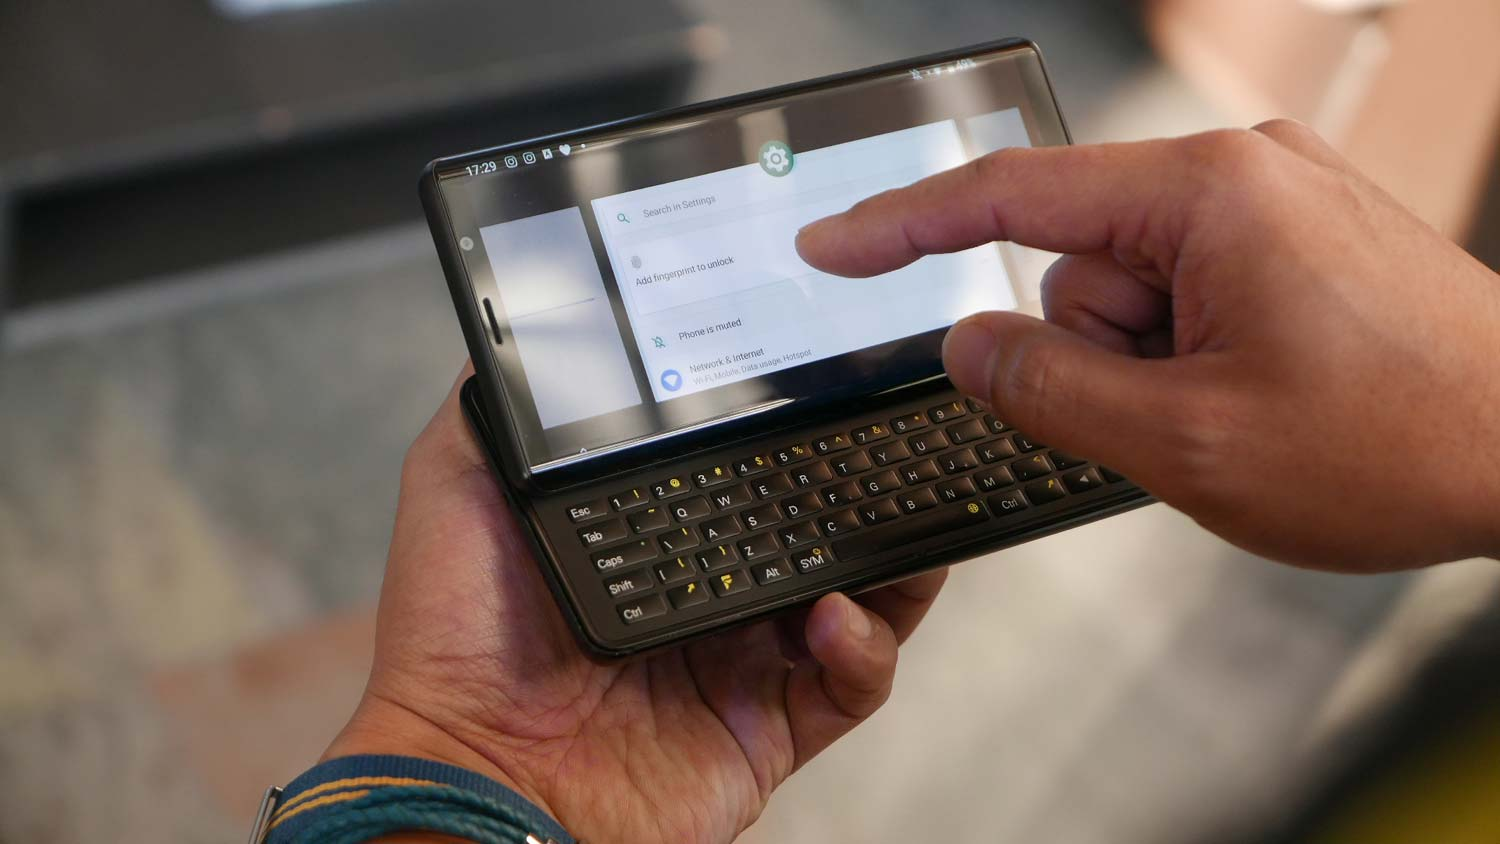 9468c718e0d F(X) Pro 1 Hands-On: This Android Phone Has a Sliding QWERTY Keyboard |  Tom's Guide